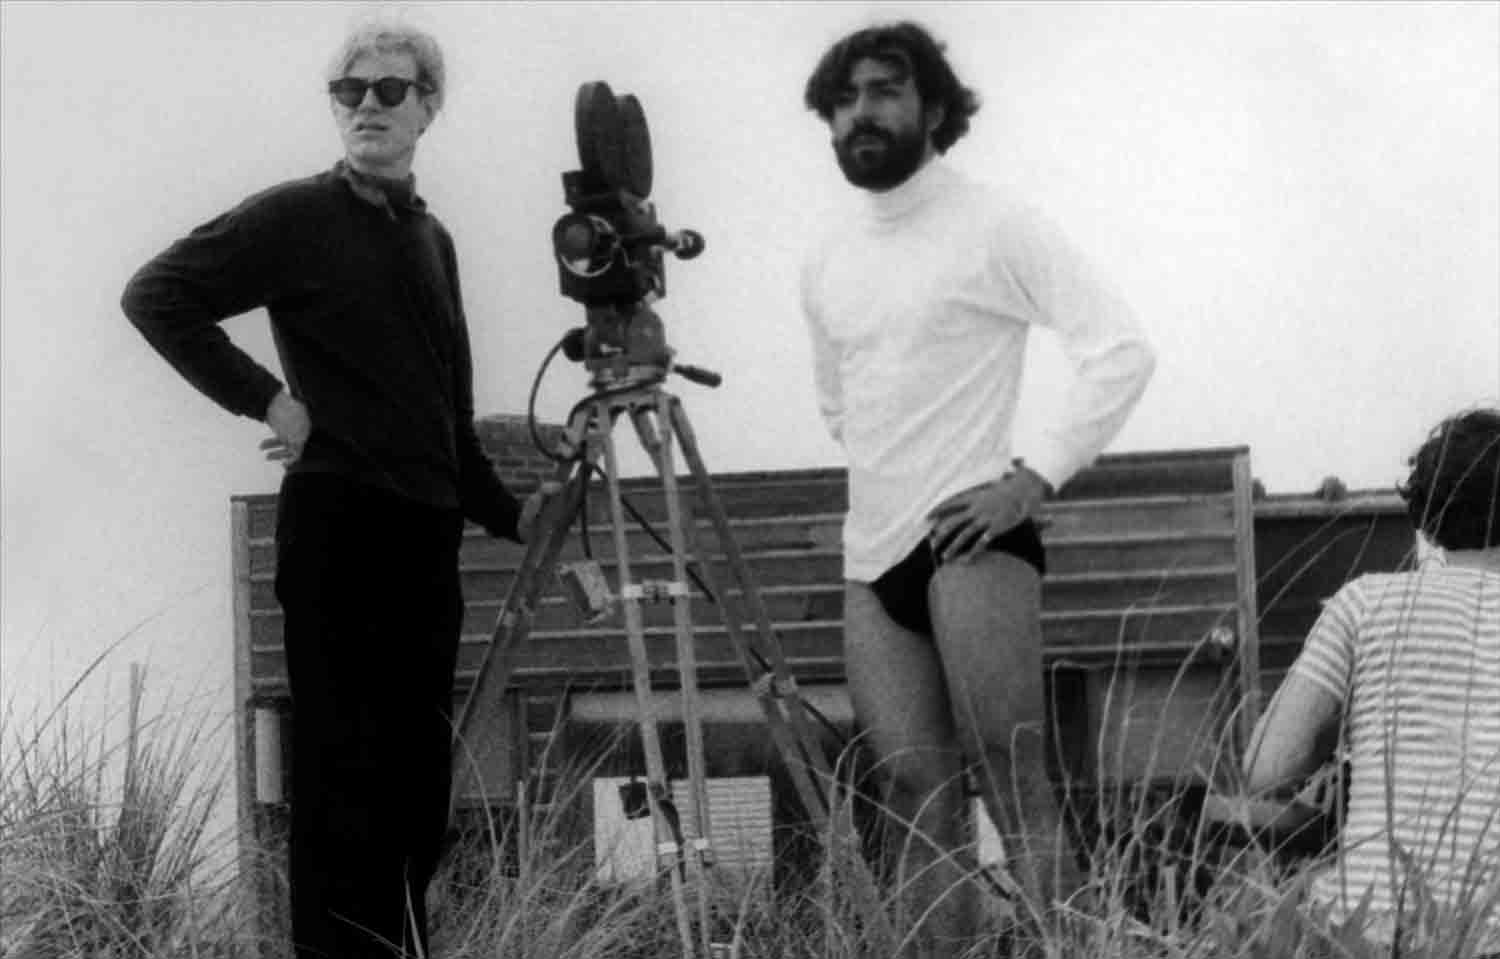 Andy Warhol and Rolando Peña during the filming of ****(Four Stars). Photo by Marcelo Montealegre